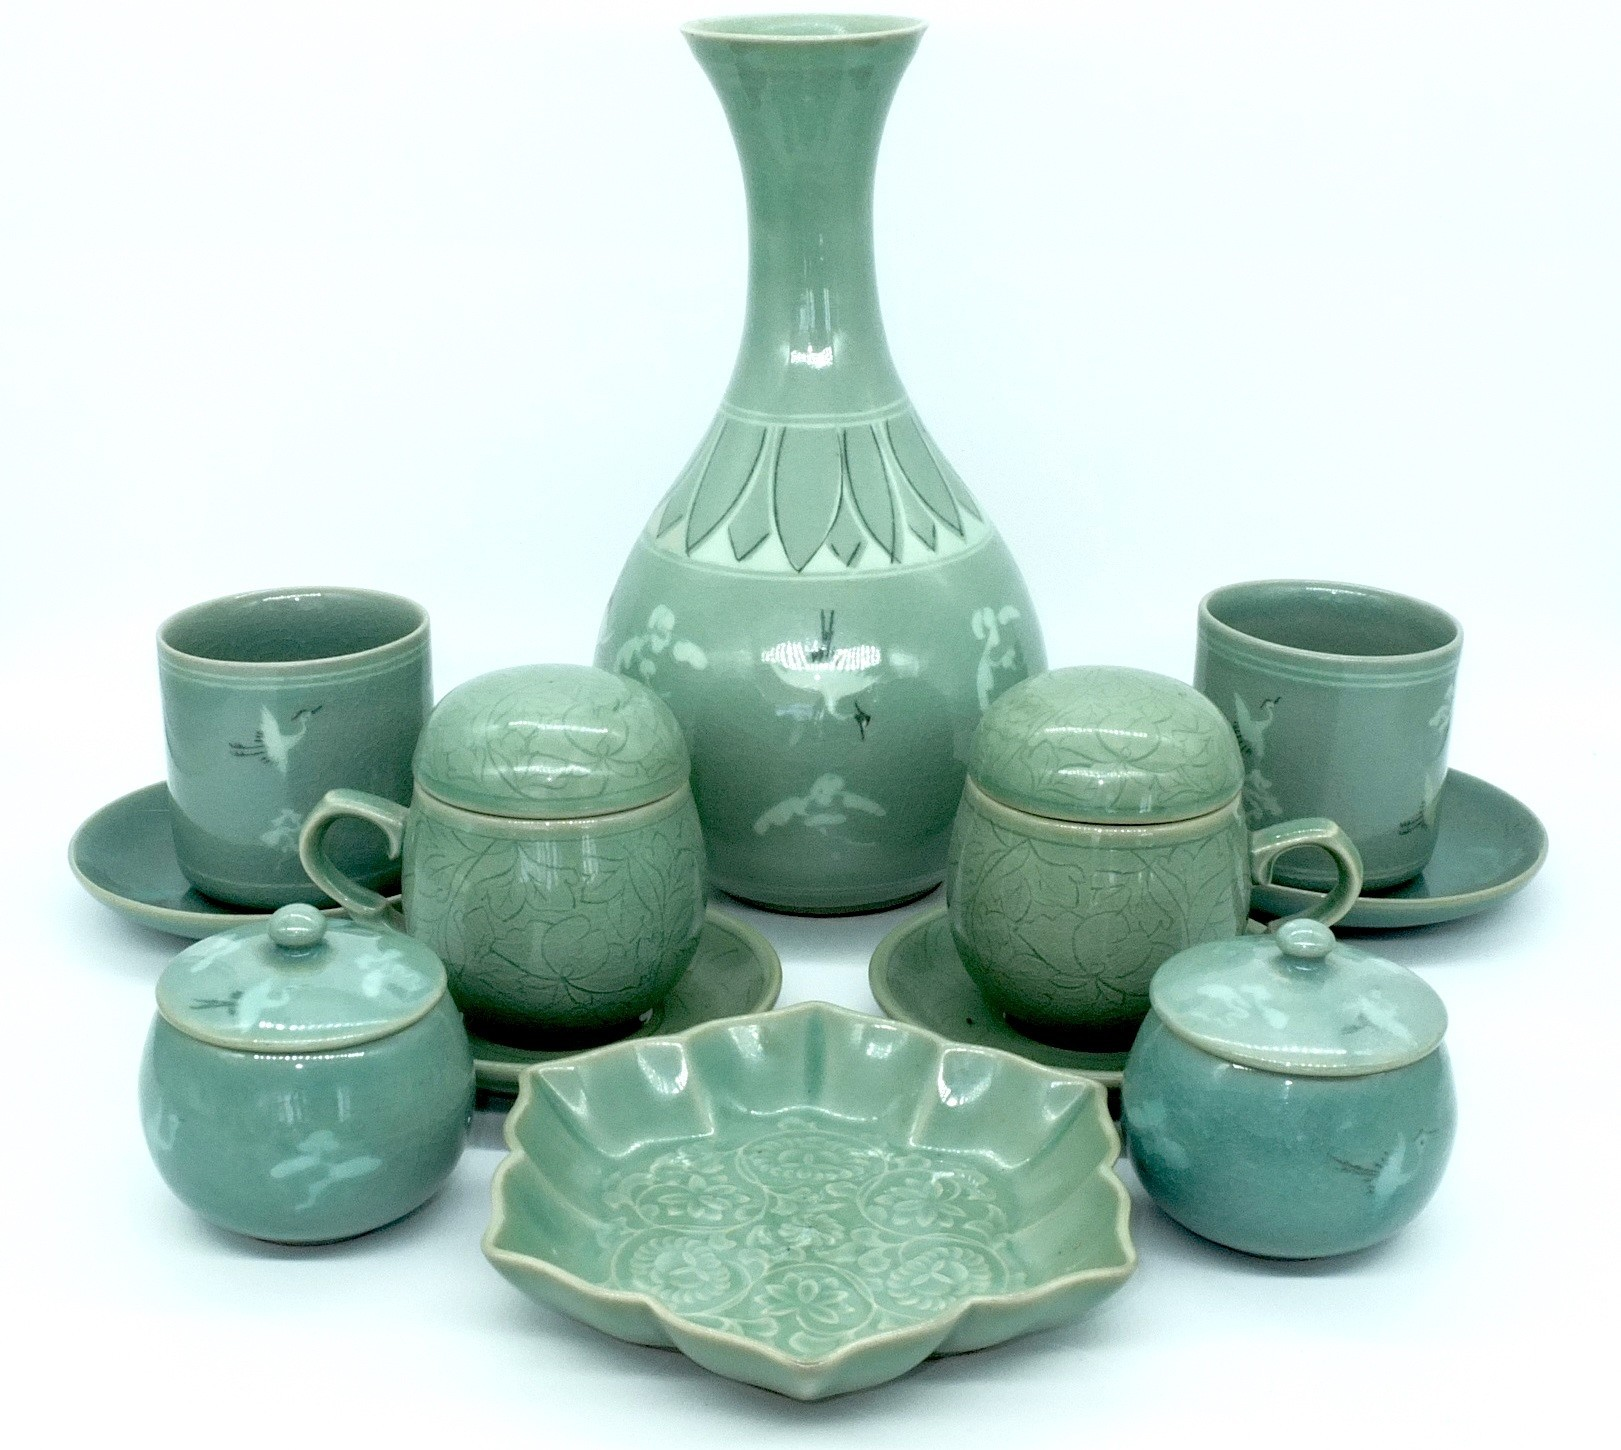 'Group of Vintage Korean Celadon Bowls and a Vase'